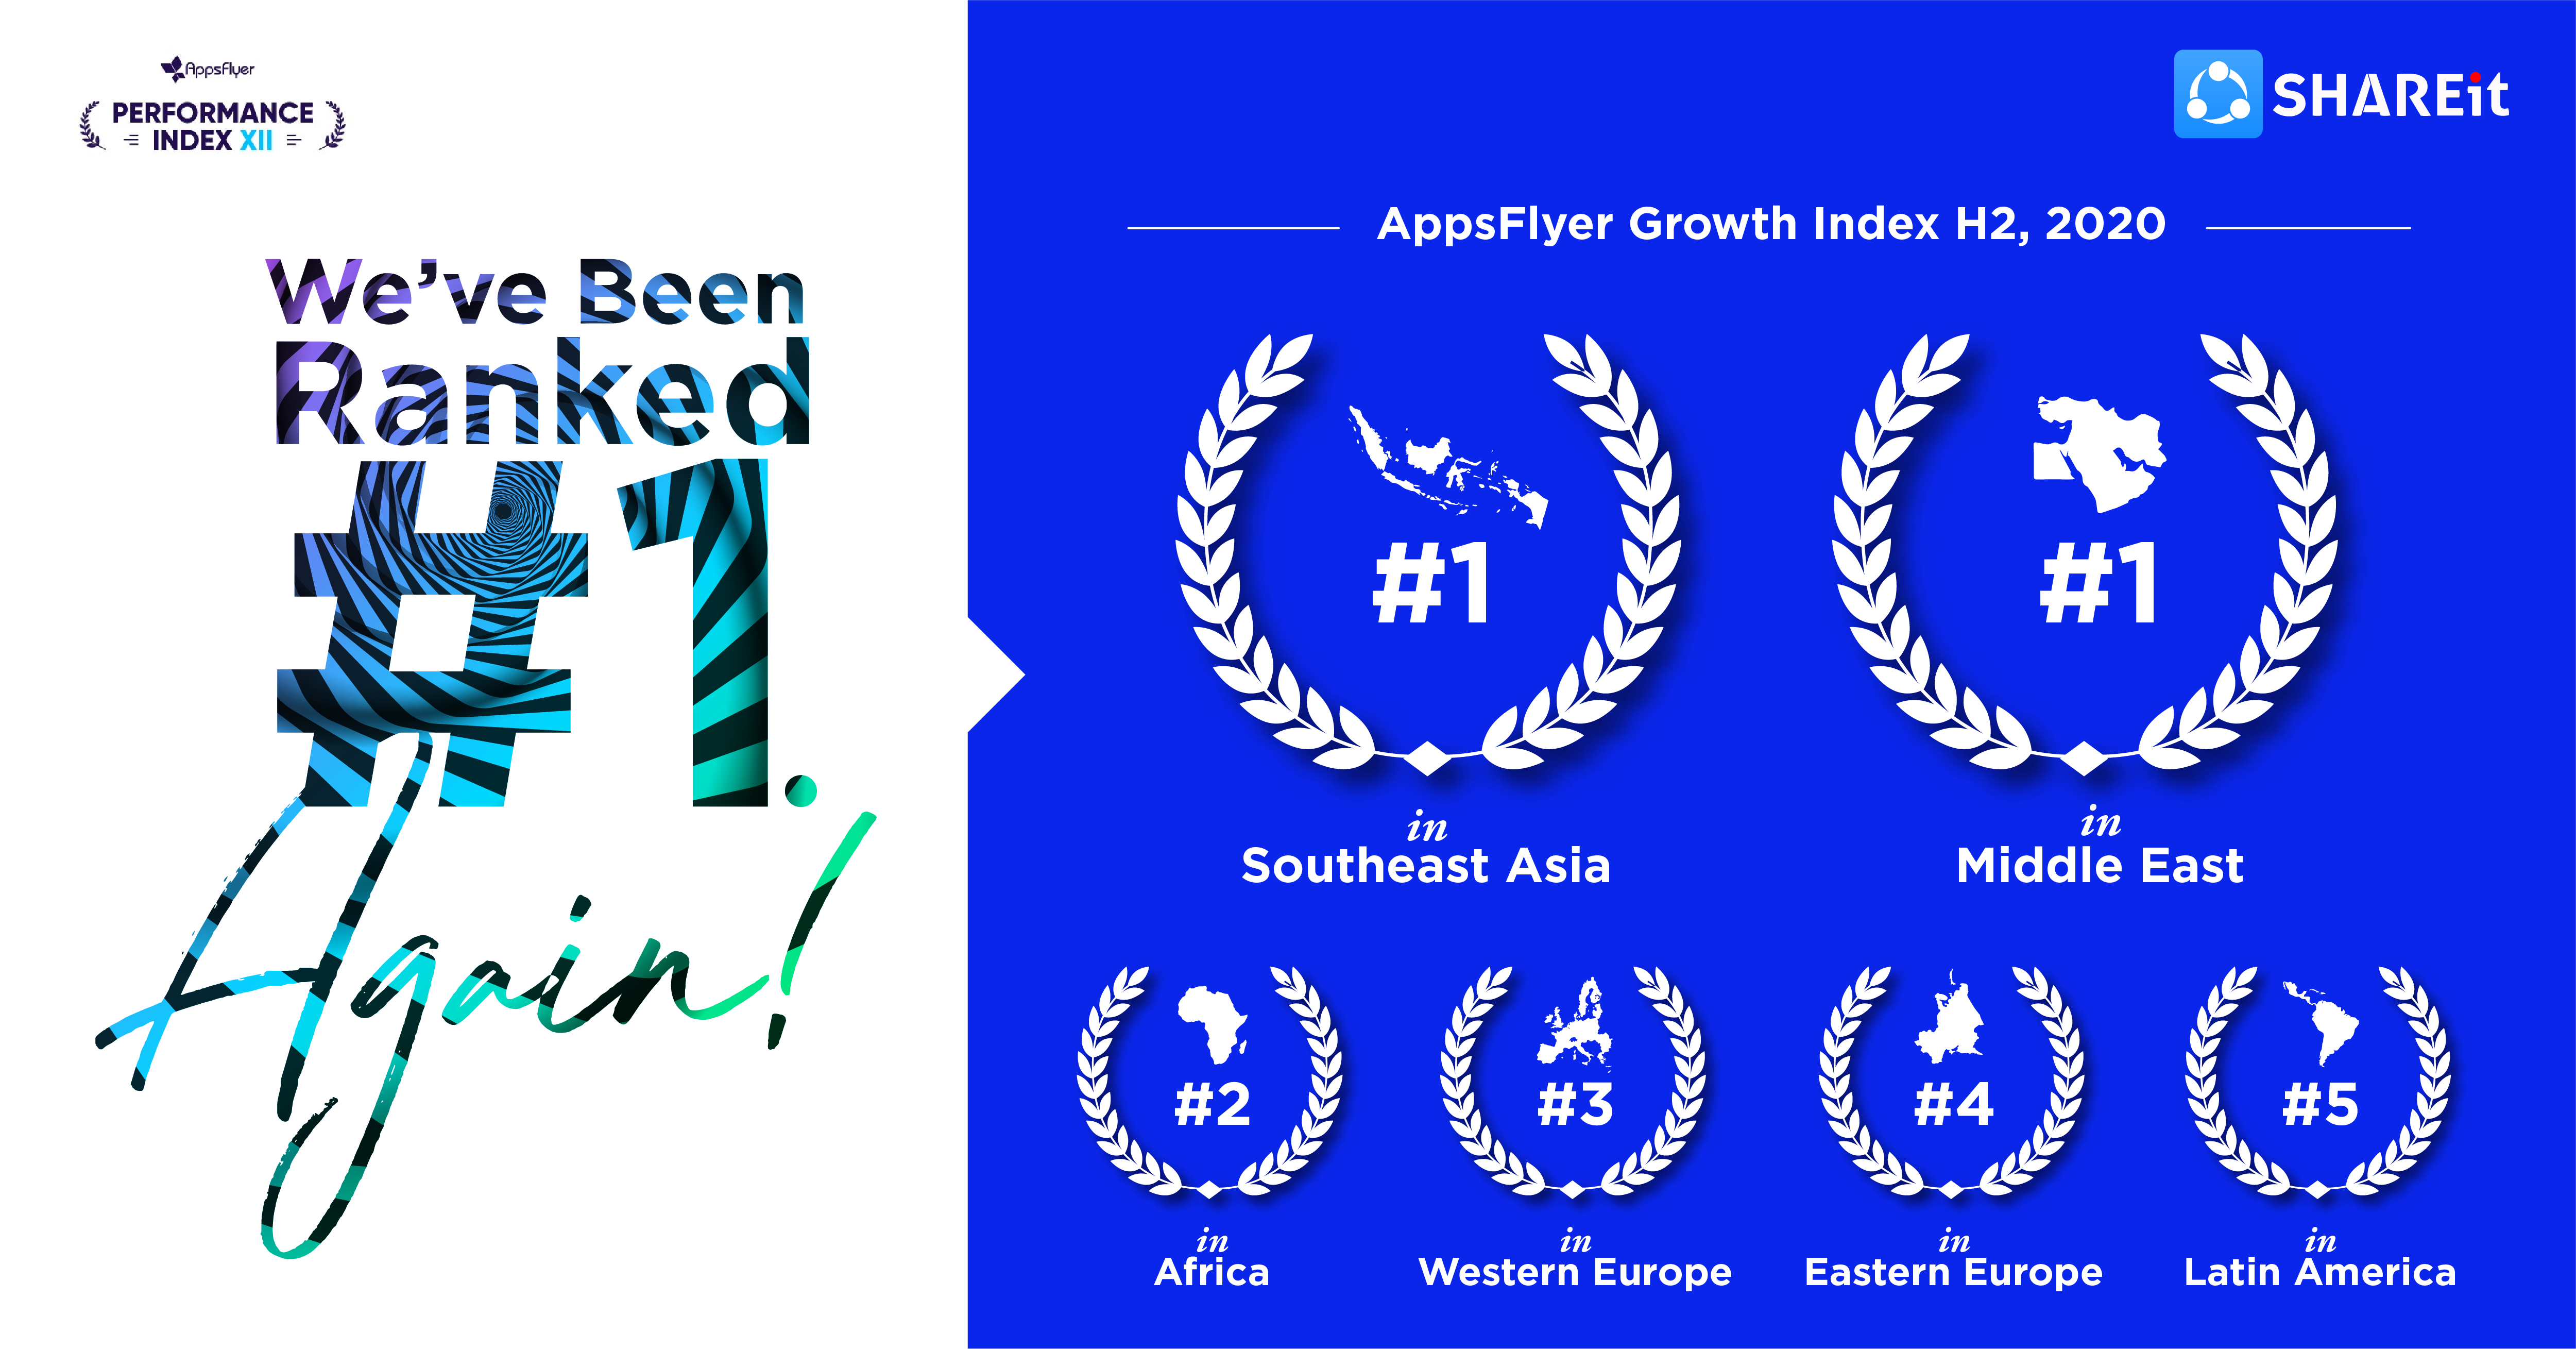 SHAREit tops and amongst the fastest-growing media publishers in Southeast Asia and the Middle East in H2 2020